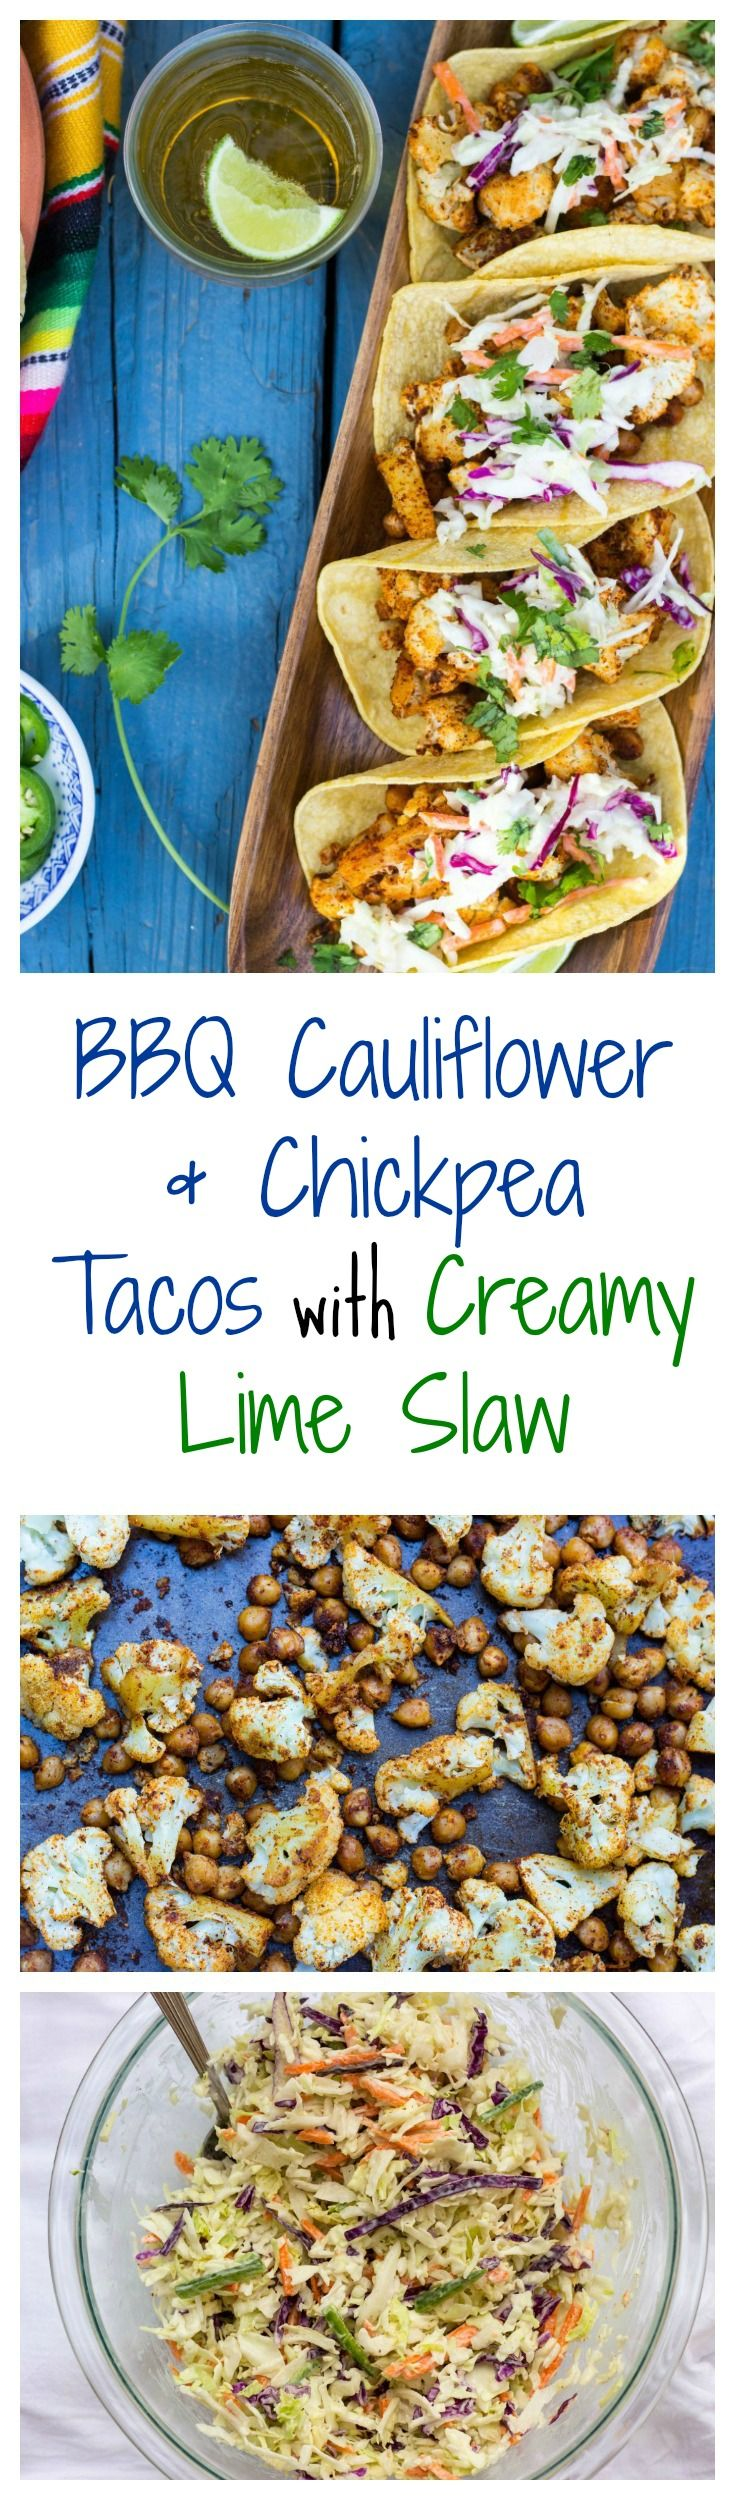 BBQ Cauliflower & Chickpea Tacos with a Creamy Lime Slaw {gf+v} - She Likes Food